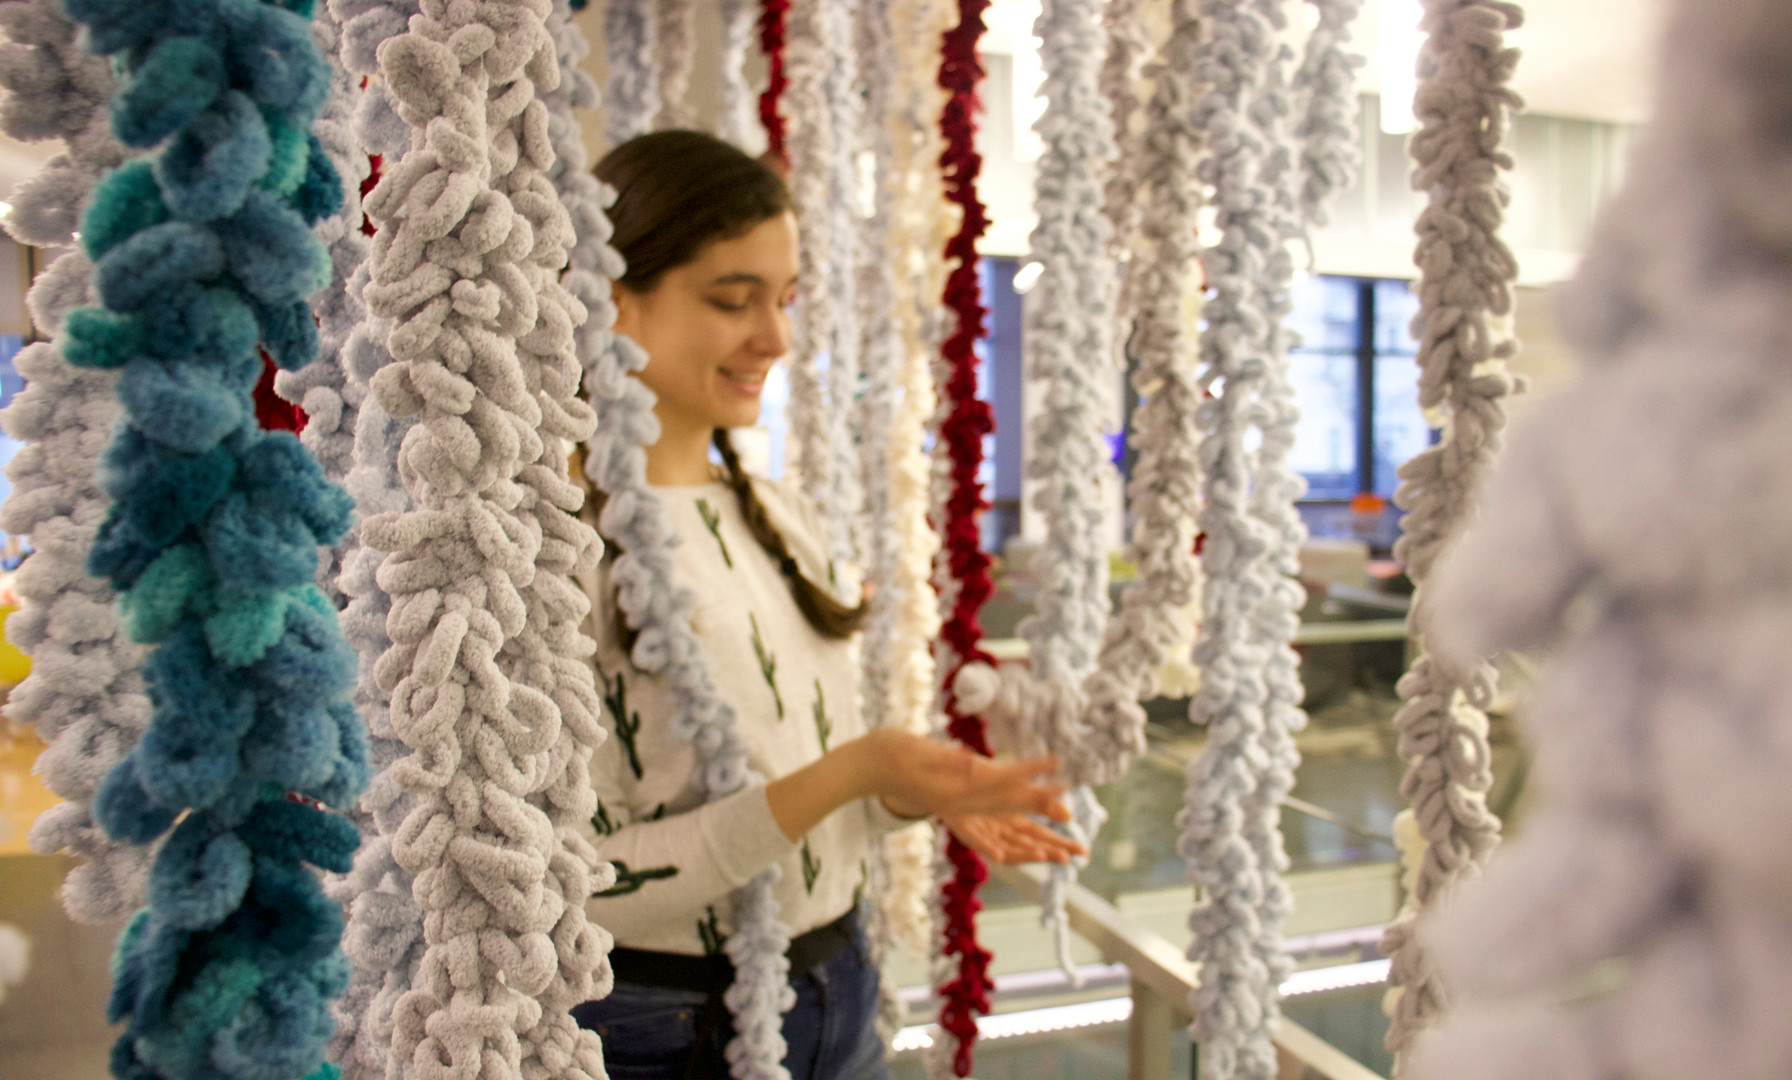 Bells are attached at the end of the yarns. As they walk through the installation, the bells ring to add onto the otherworldly atmostphere of the overall experience.